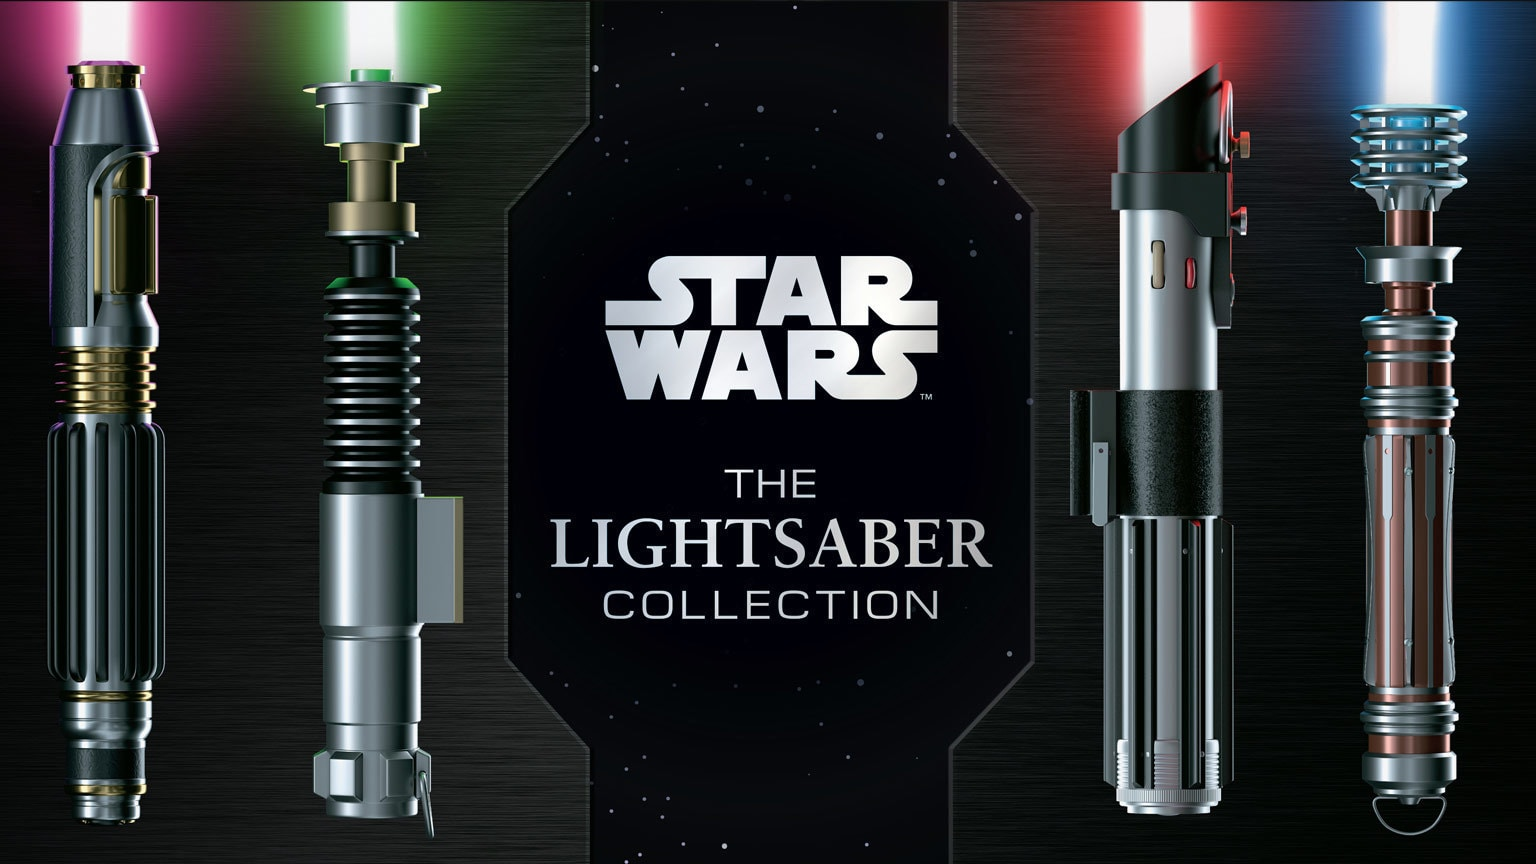 Get Your First Look Inside Star Wars: The Lightsaber Collection